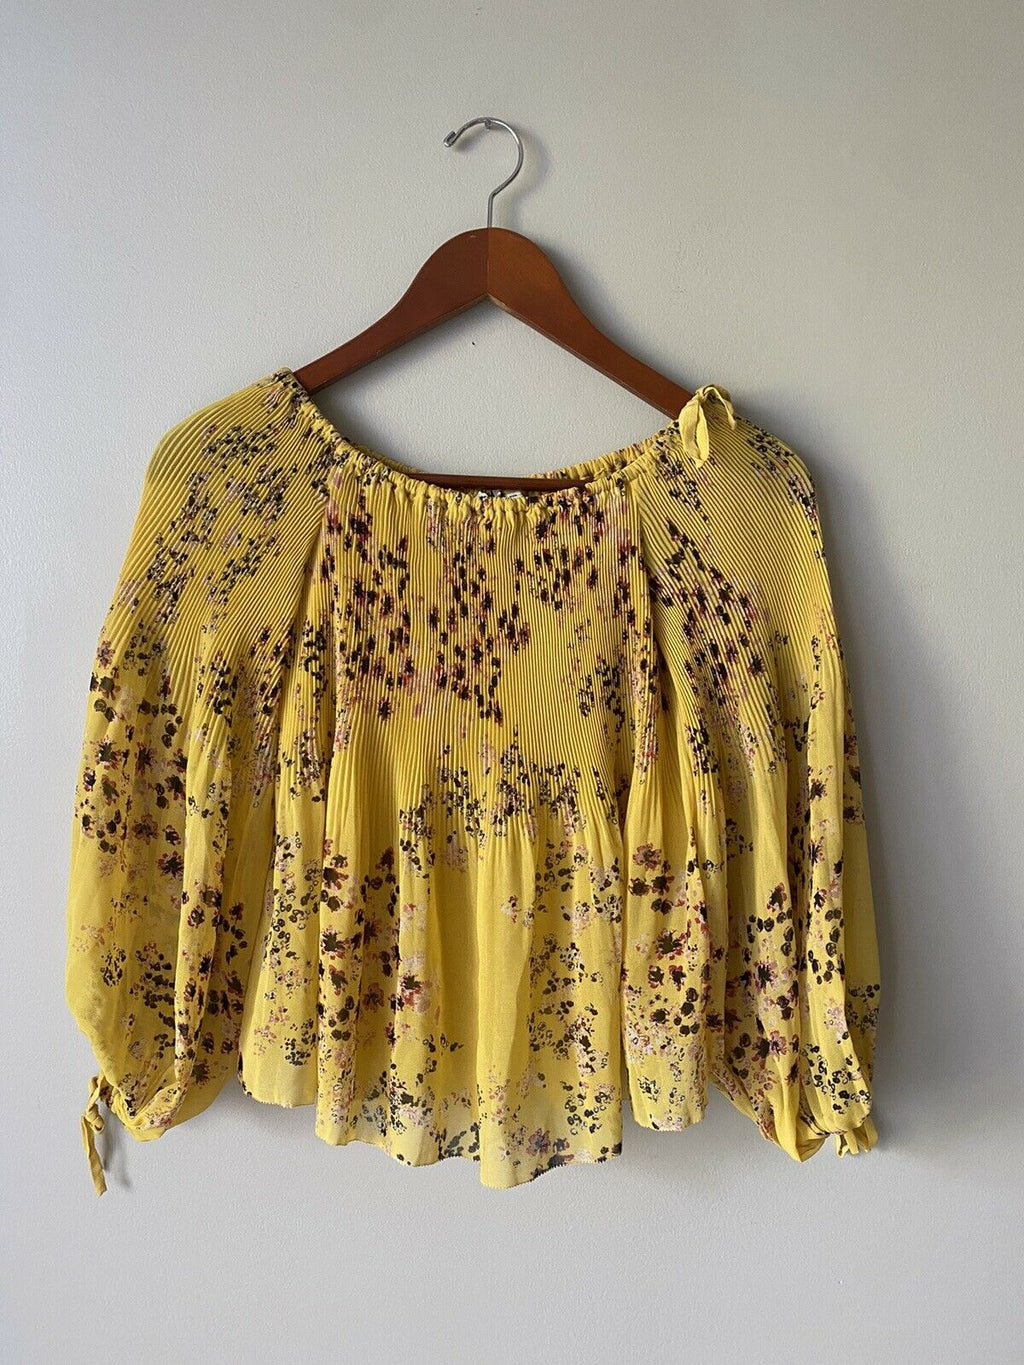 Aritzia Wilfred Women's XXS Yellow Blouse Top Pleated Long Sleeve Floral Shirt